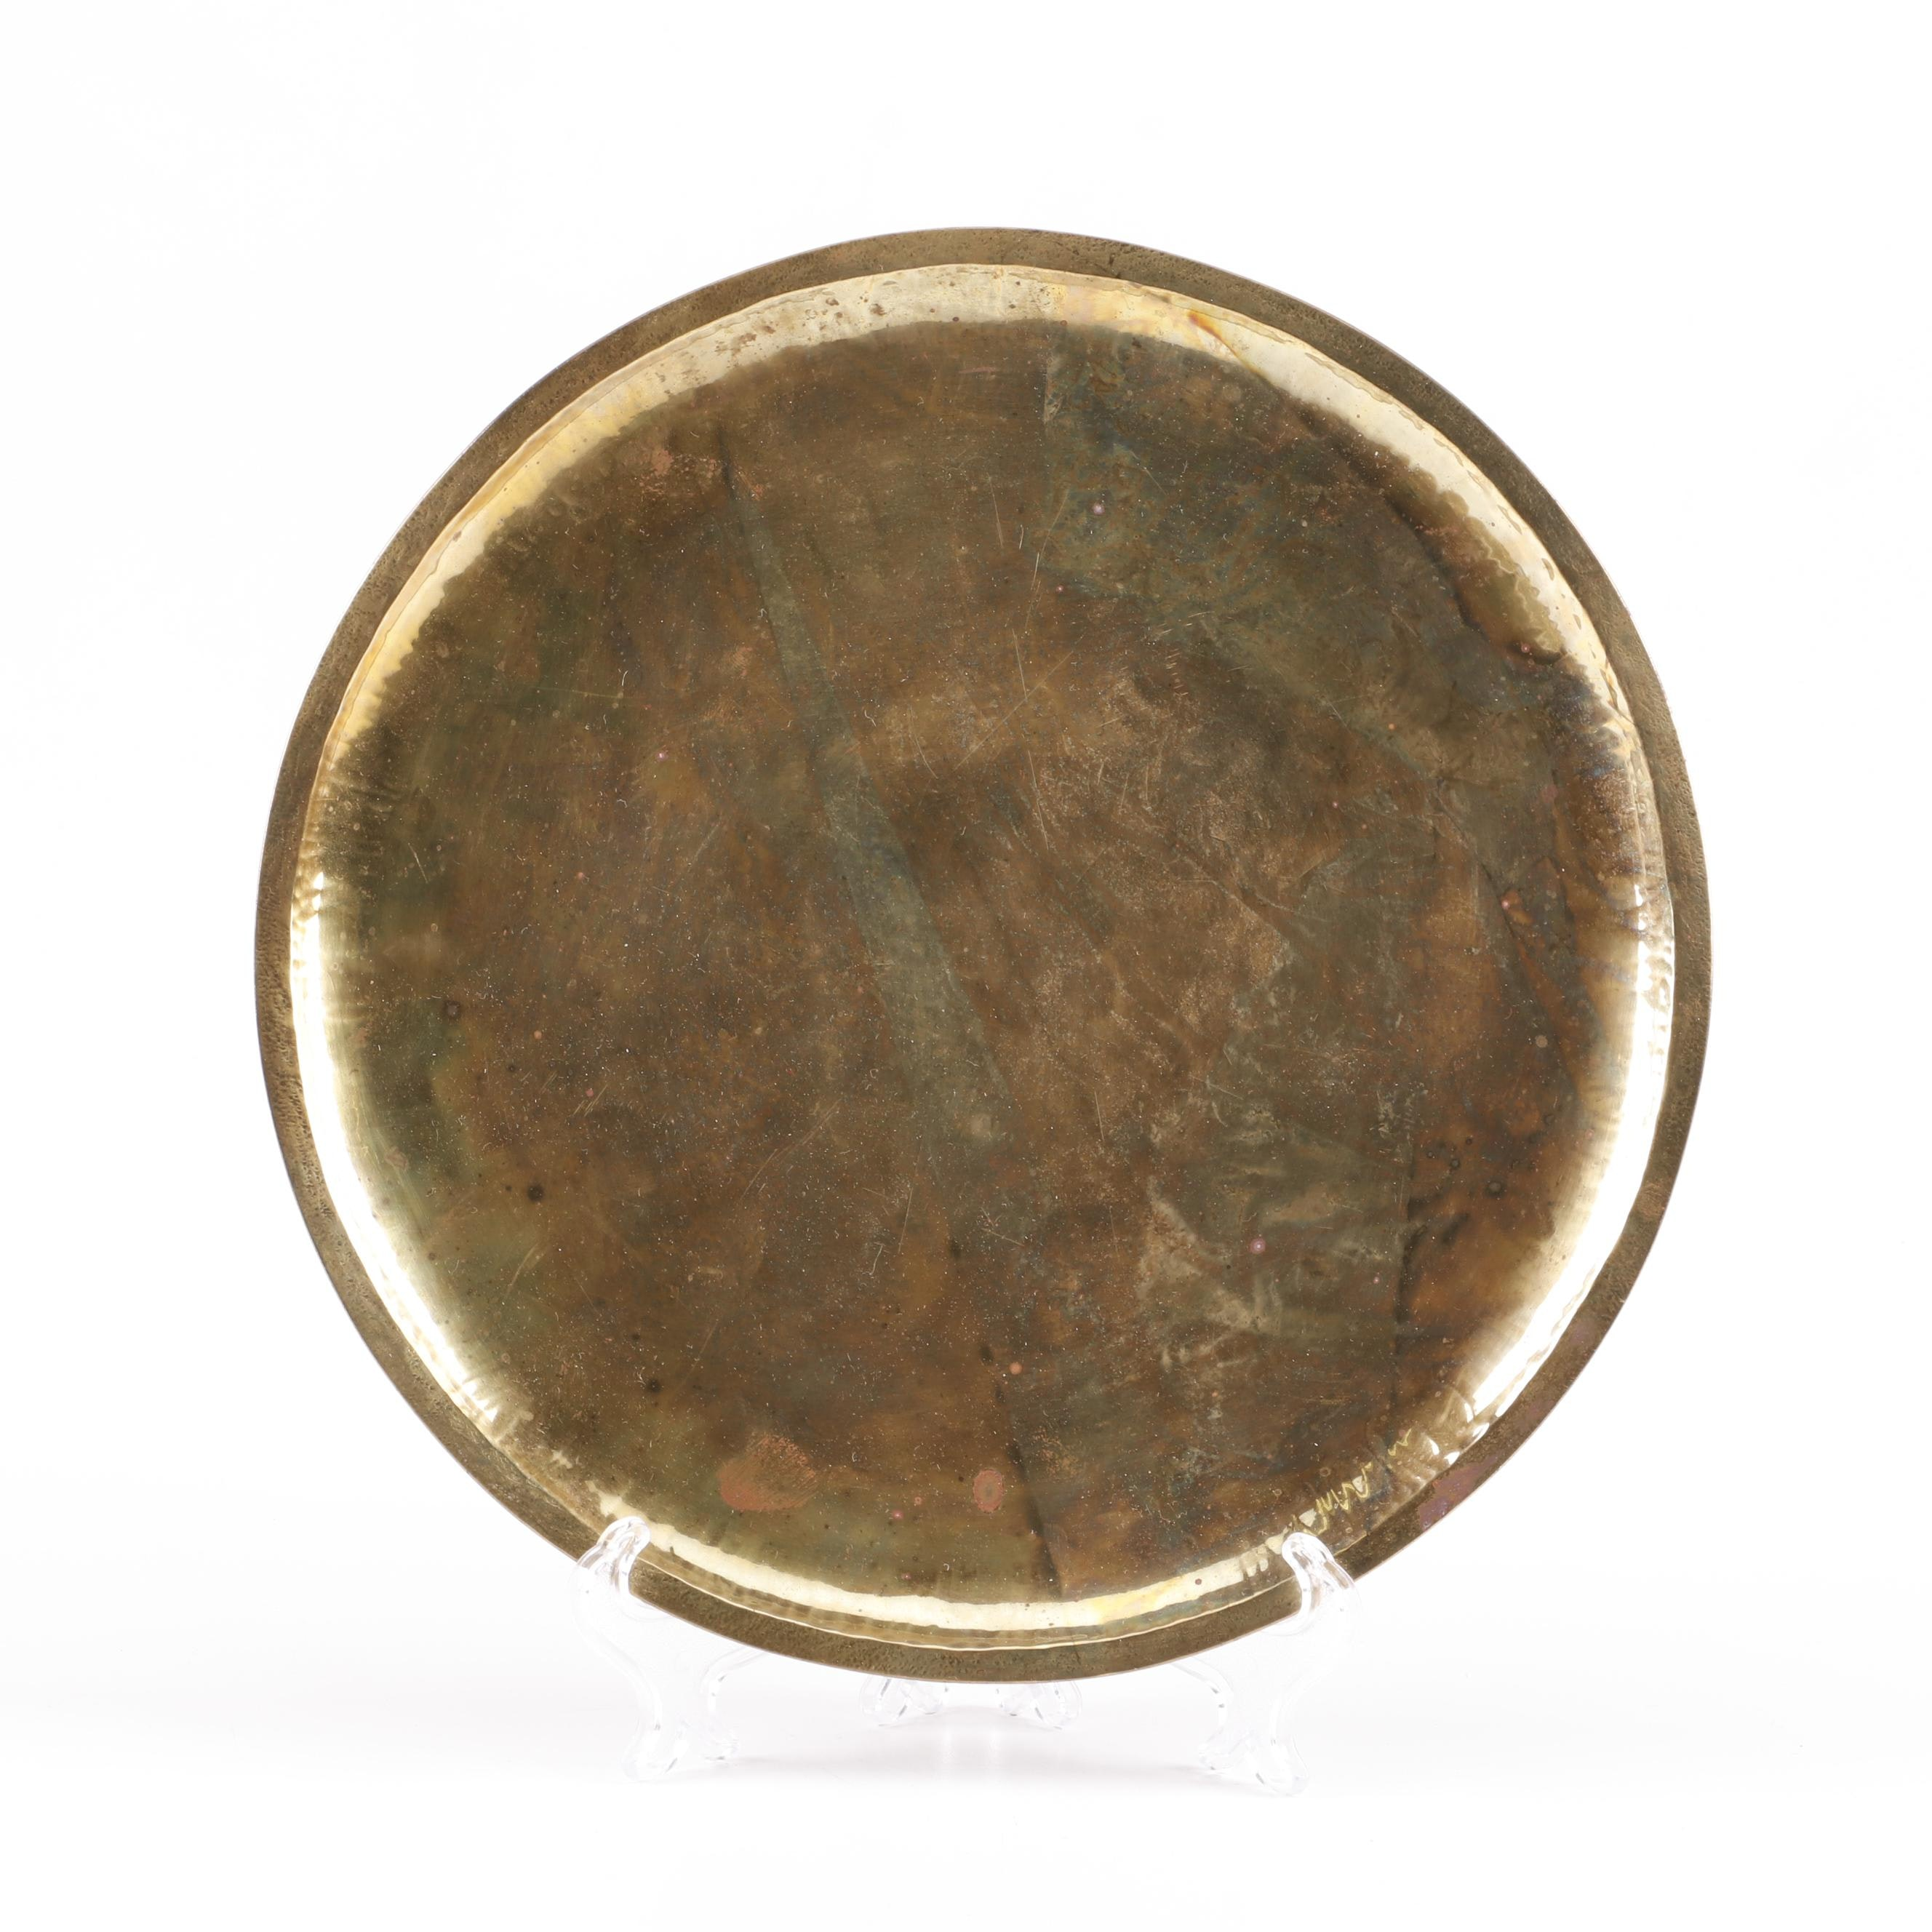 Planished Brass Tray, Early 20th Century